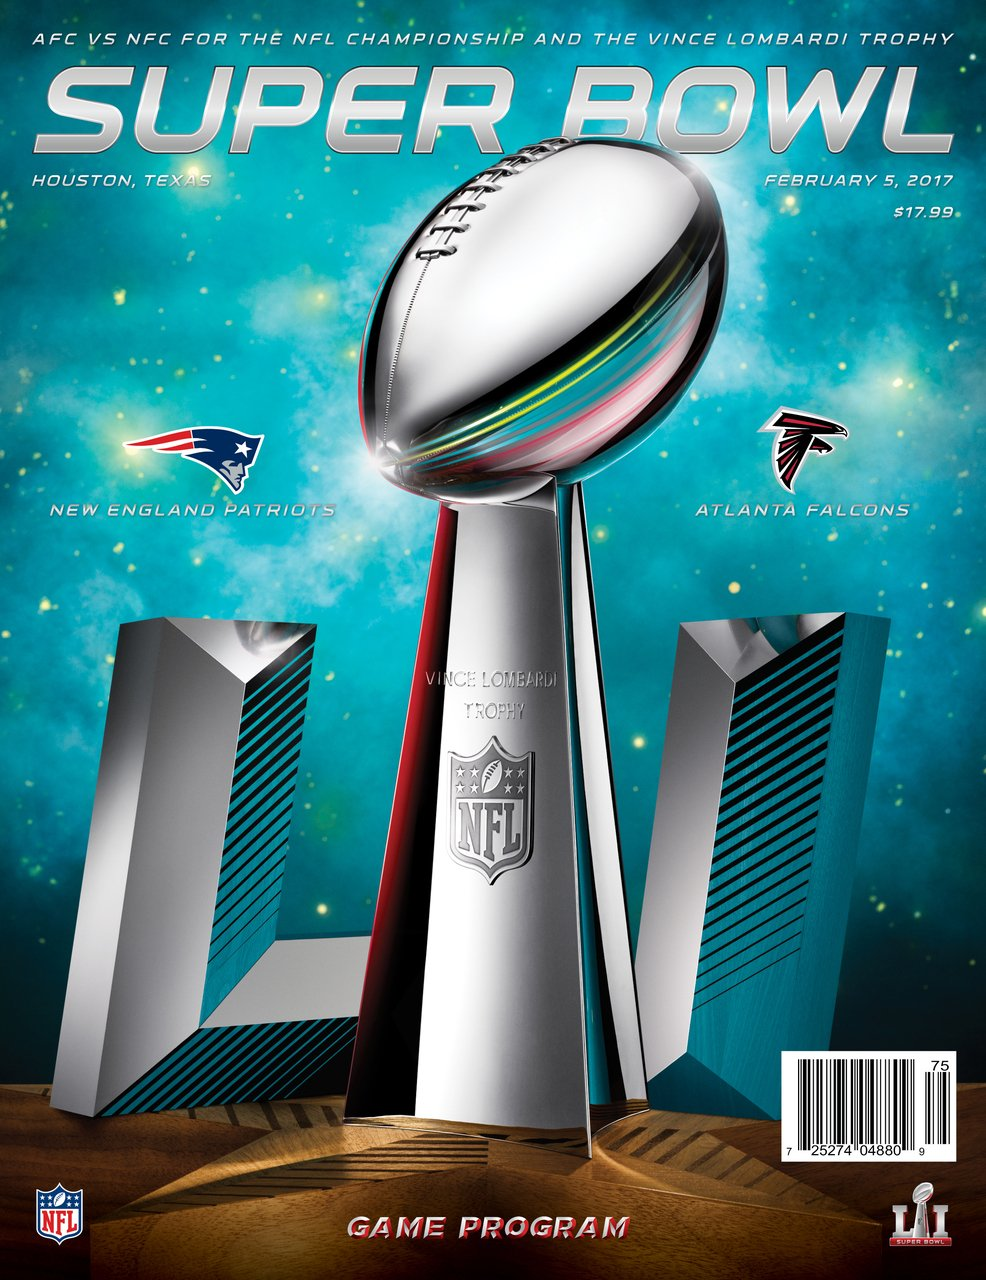 Super Bowl LI Game Program